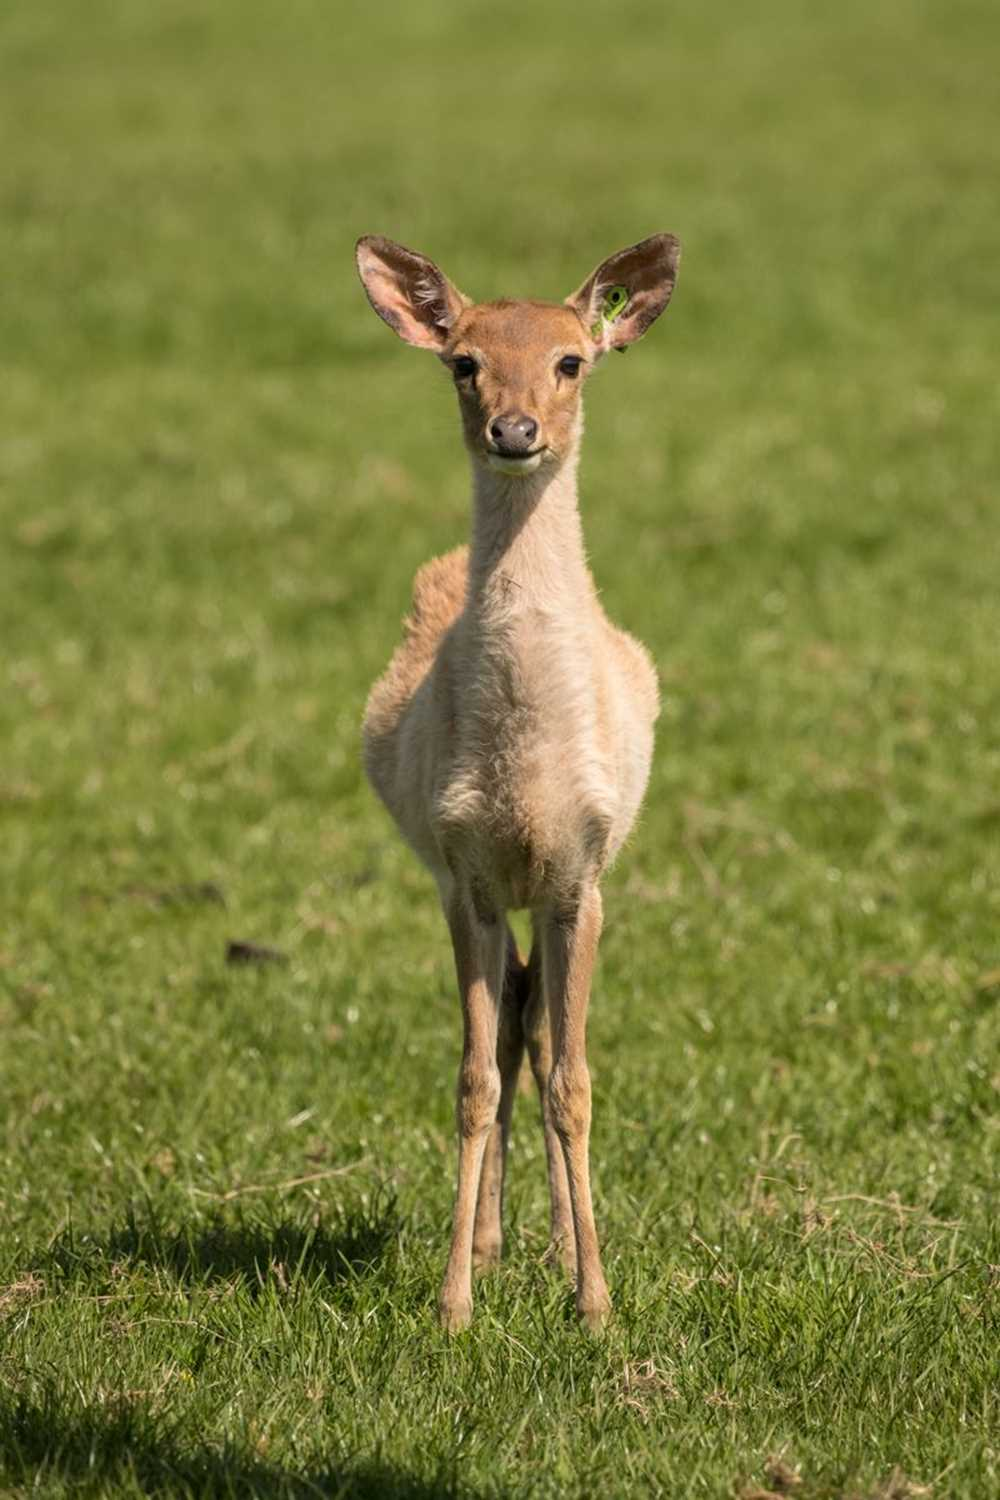 js1-browantlerdeer-ksp-may17-2171.jpg